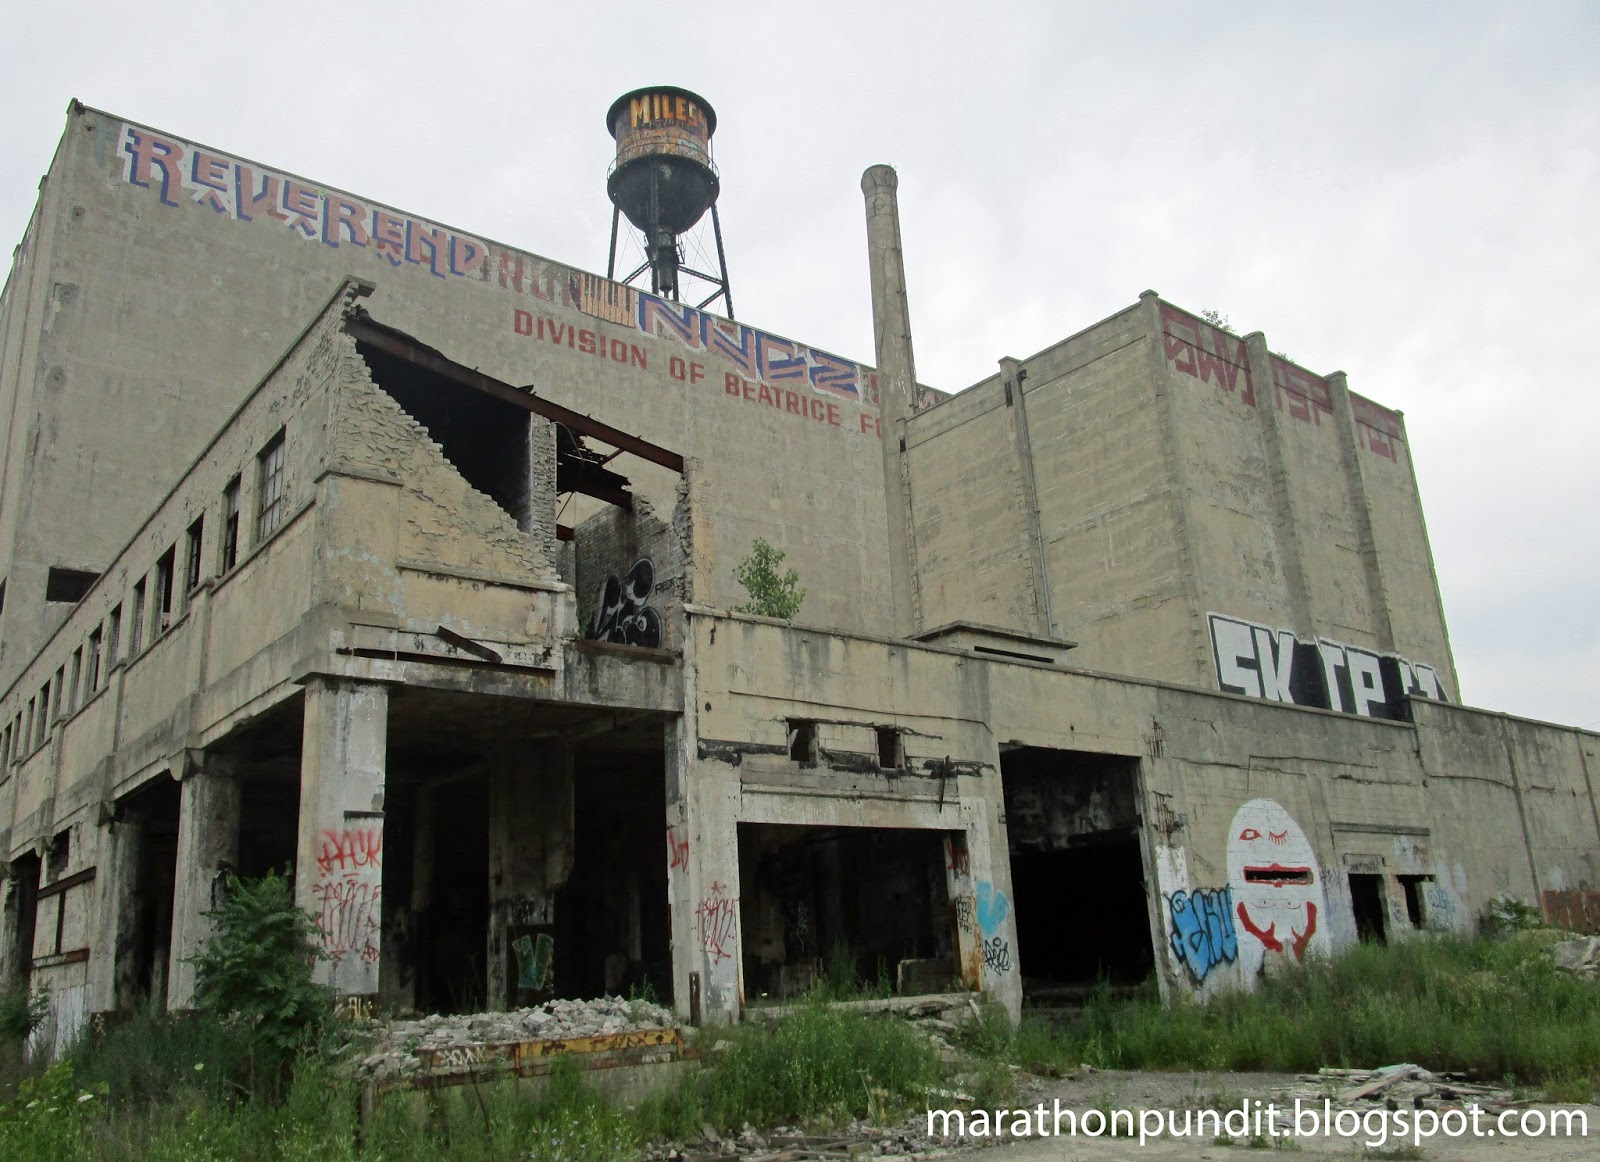 Older photos show the name of the warehouse but graffiti taggers have covered that up.  Division of Beatrice Foods  has not been obscured. & Marathon Pundit: (Photos) Detroitu0027s abandoned Grand Trunk Warehouse ...